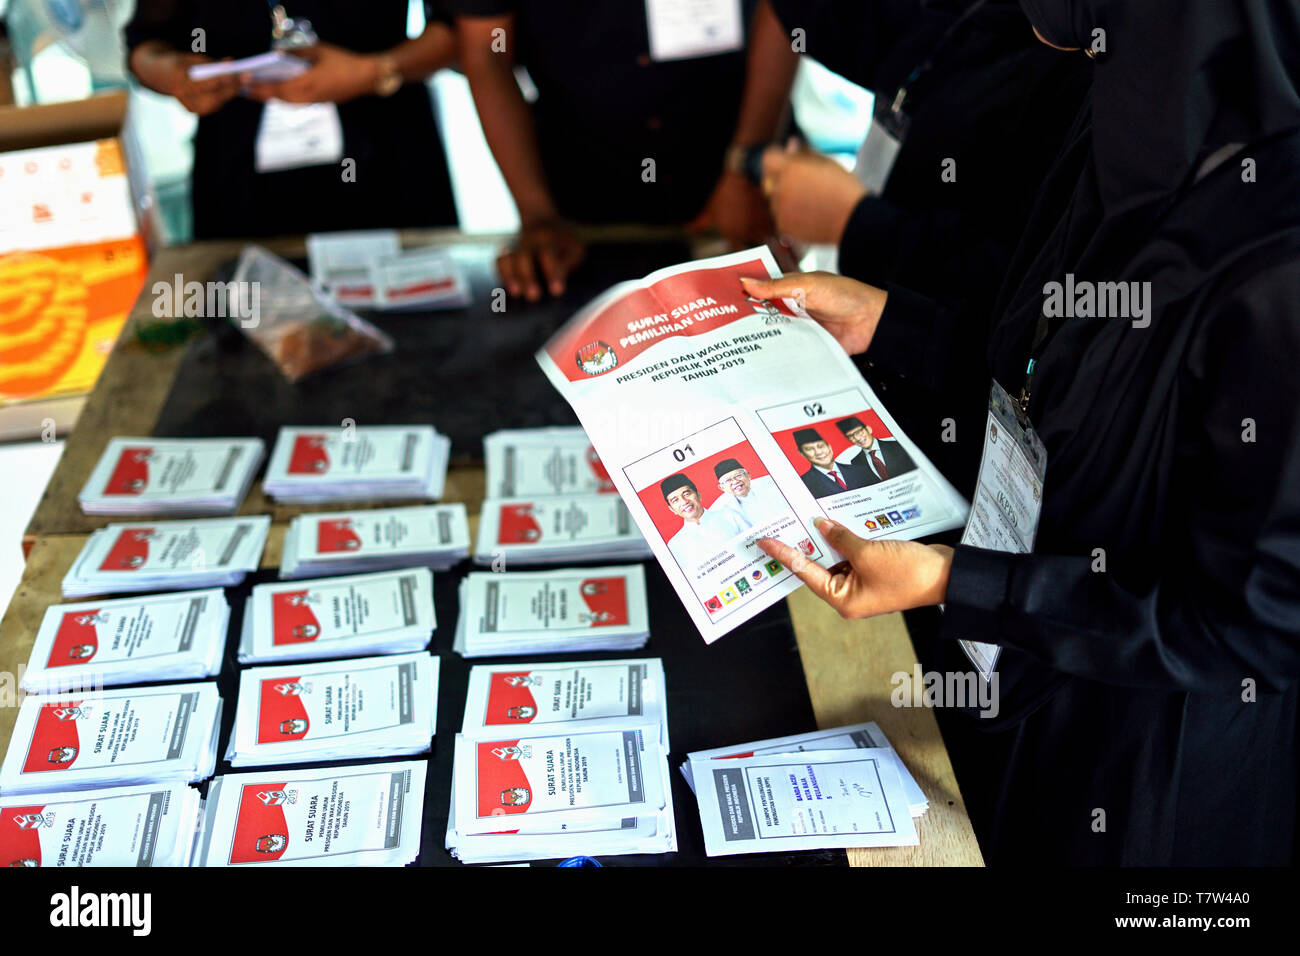 An election officer holds up the ballot during vote count at a polling station after the general election in Banda Aceh, Indonesia - Stock Image